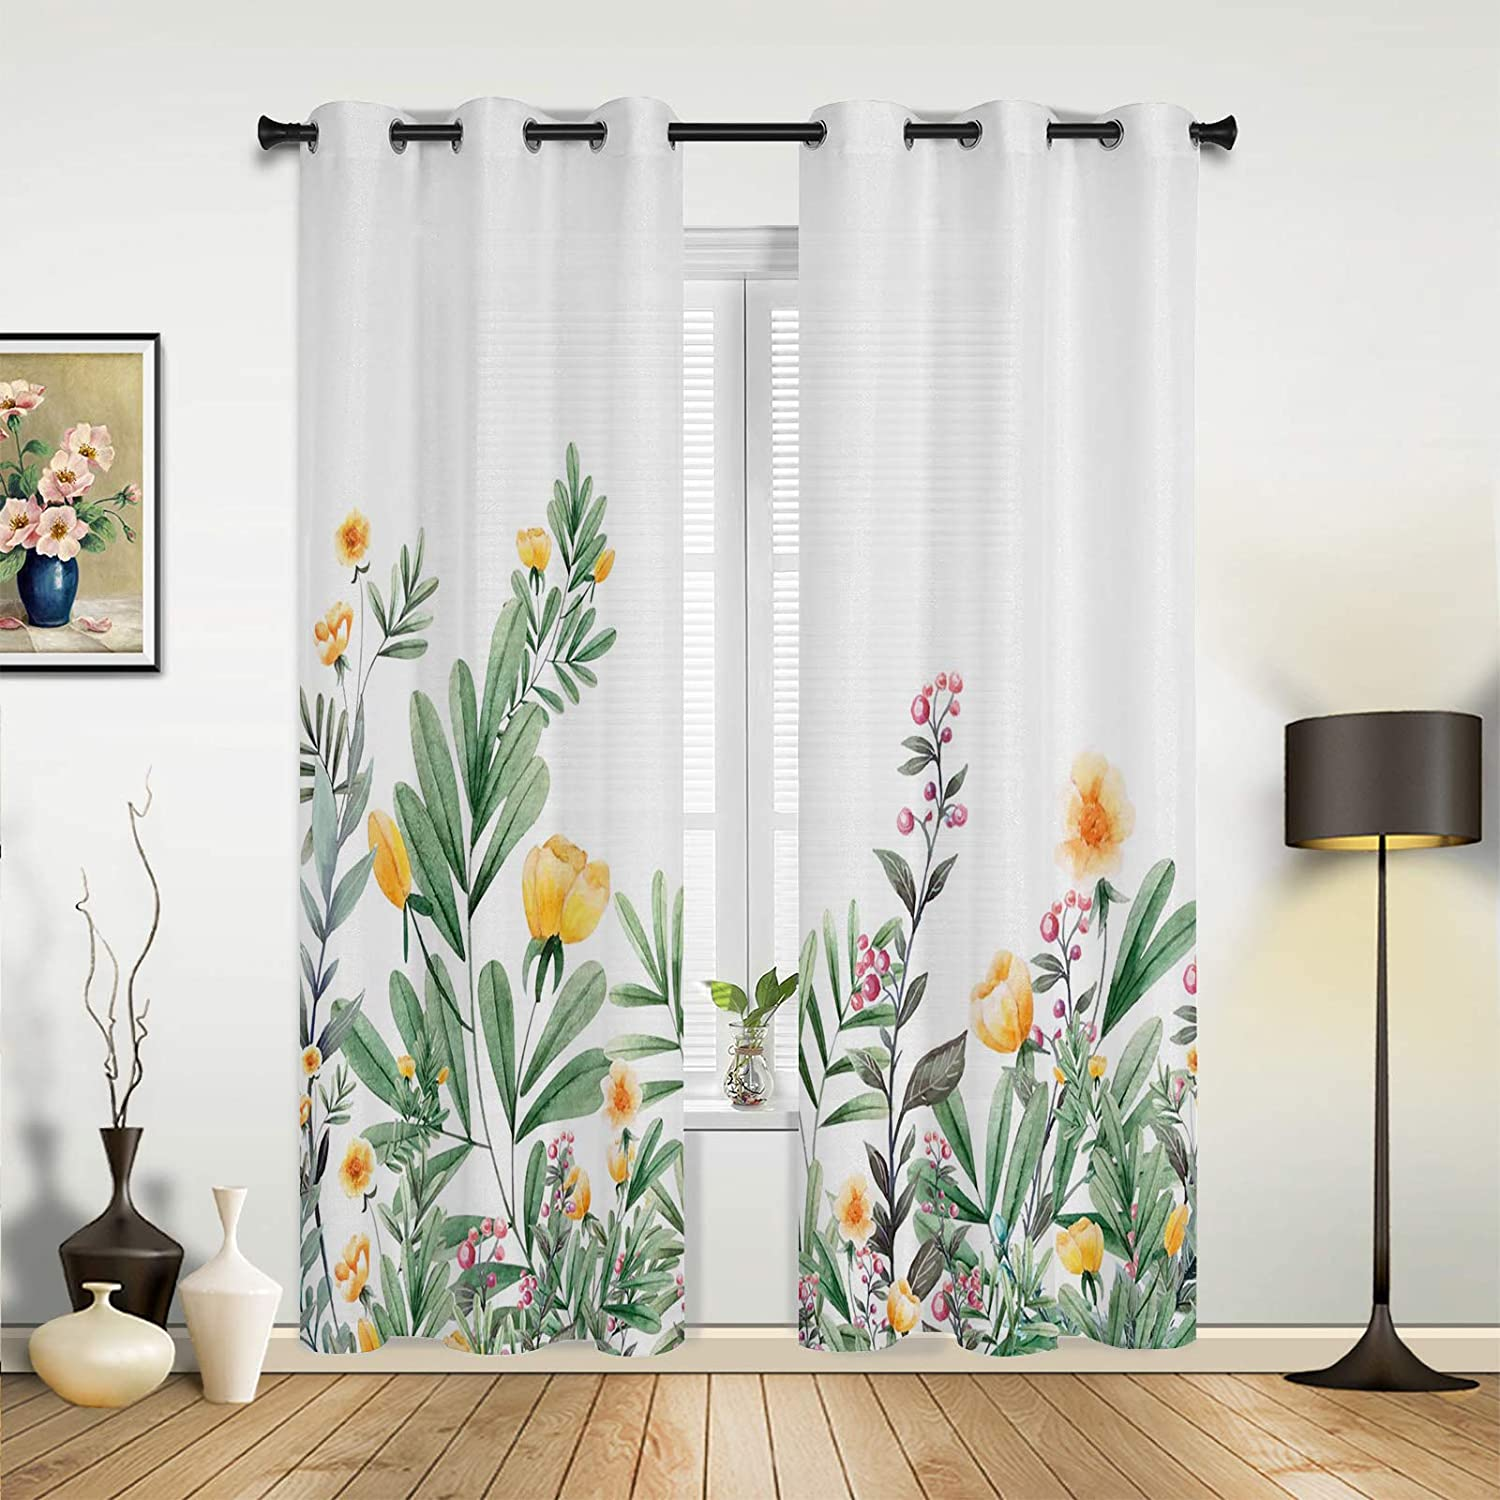 Window Curtains Drapes Panels Spring Vital Yellow Max 42% OFF Green Plants Wholesale S